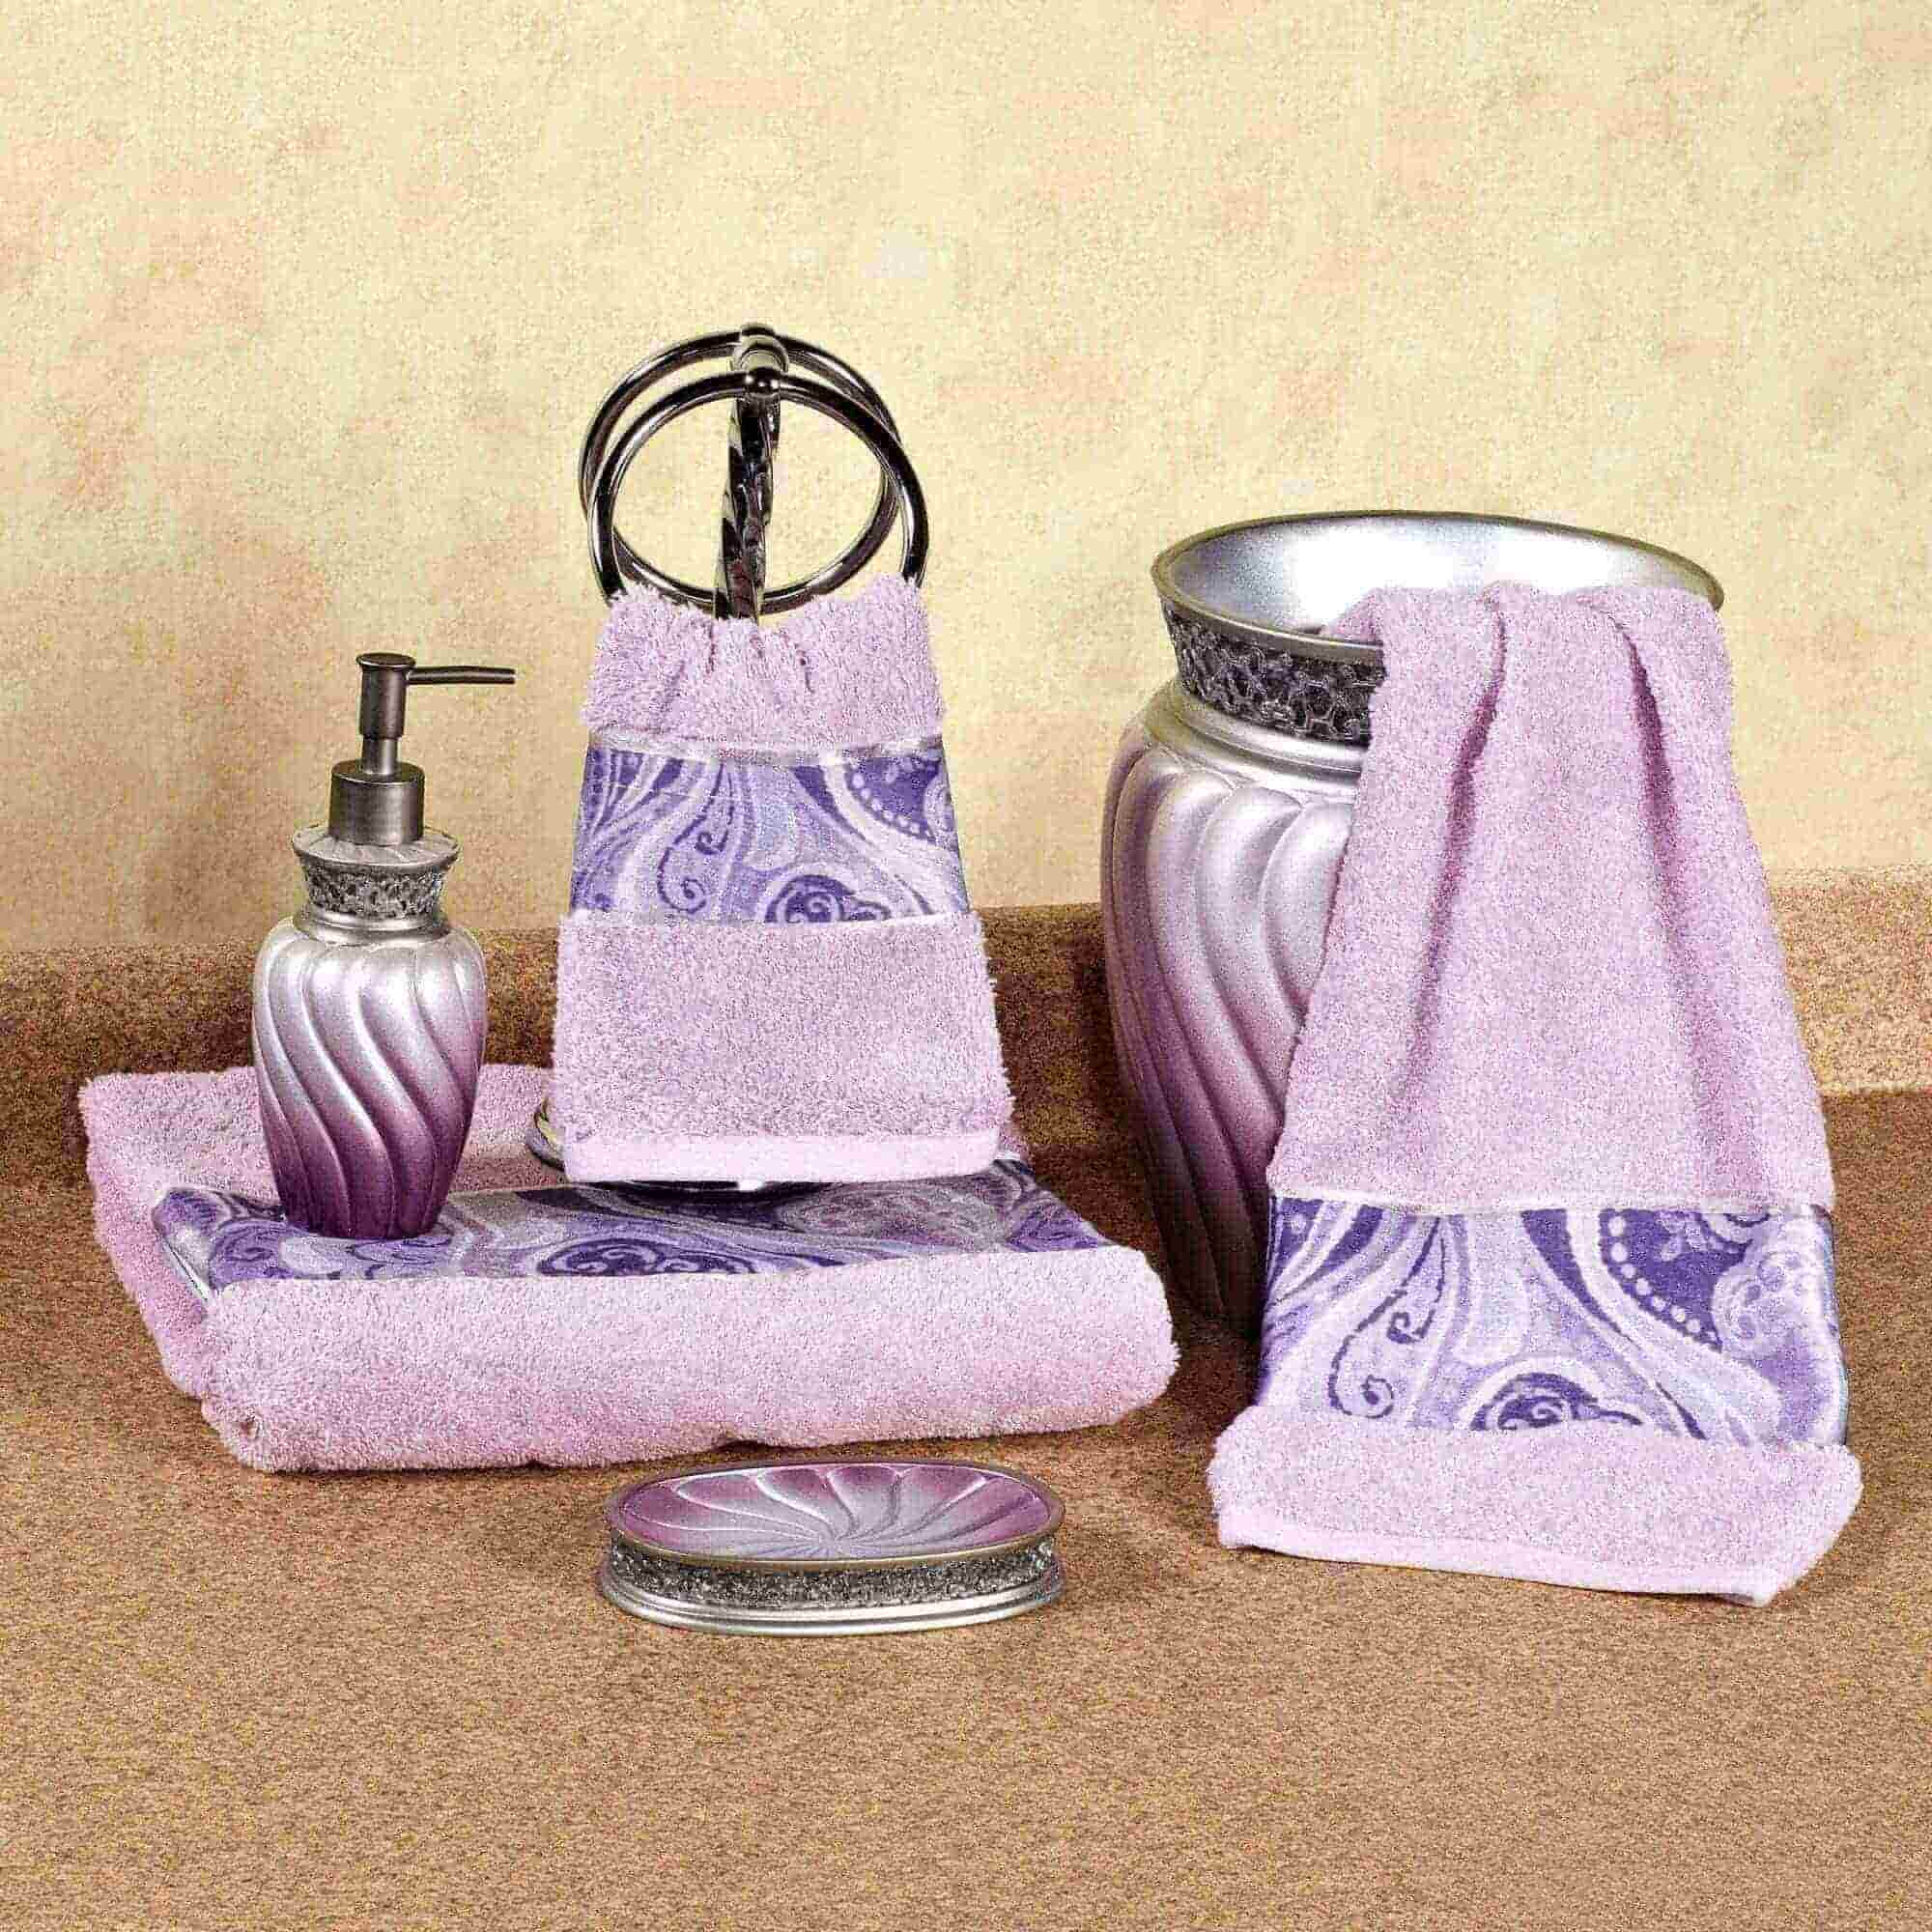 Bathroom Towel Decoration Ideas